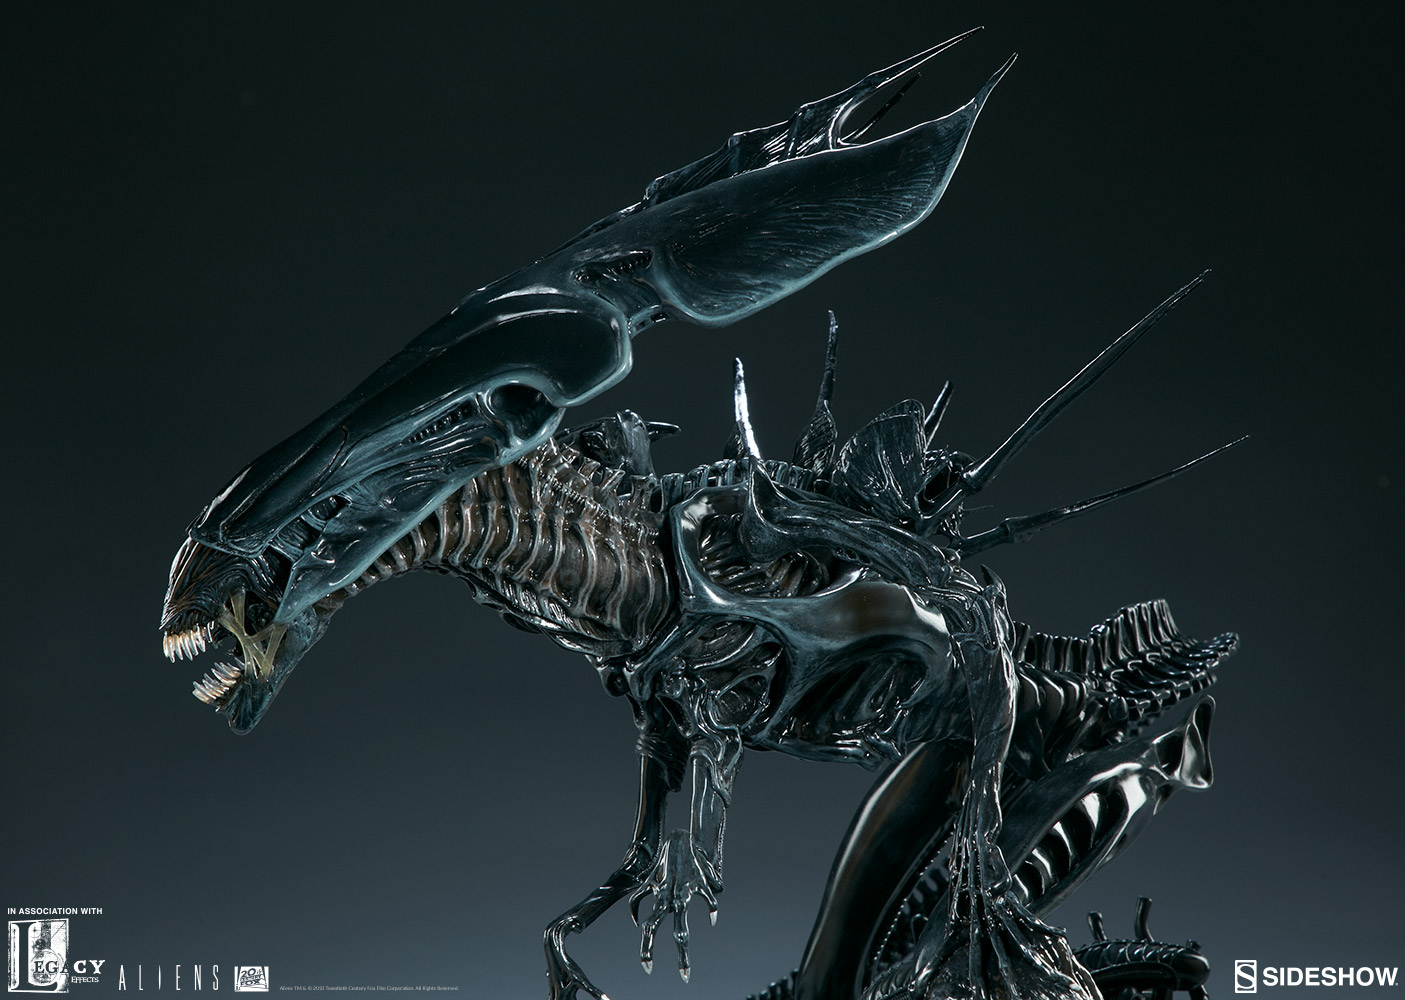 Aliens Alien Queen Maquette by Sideshow Collectibles